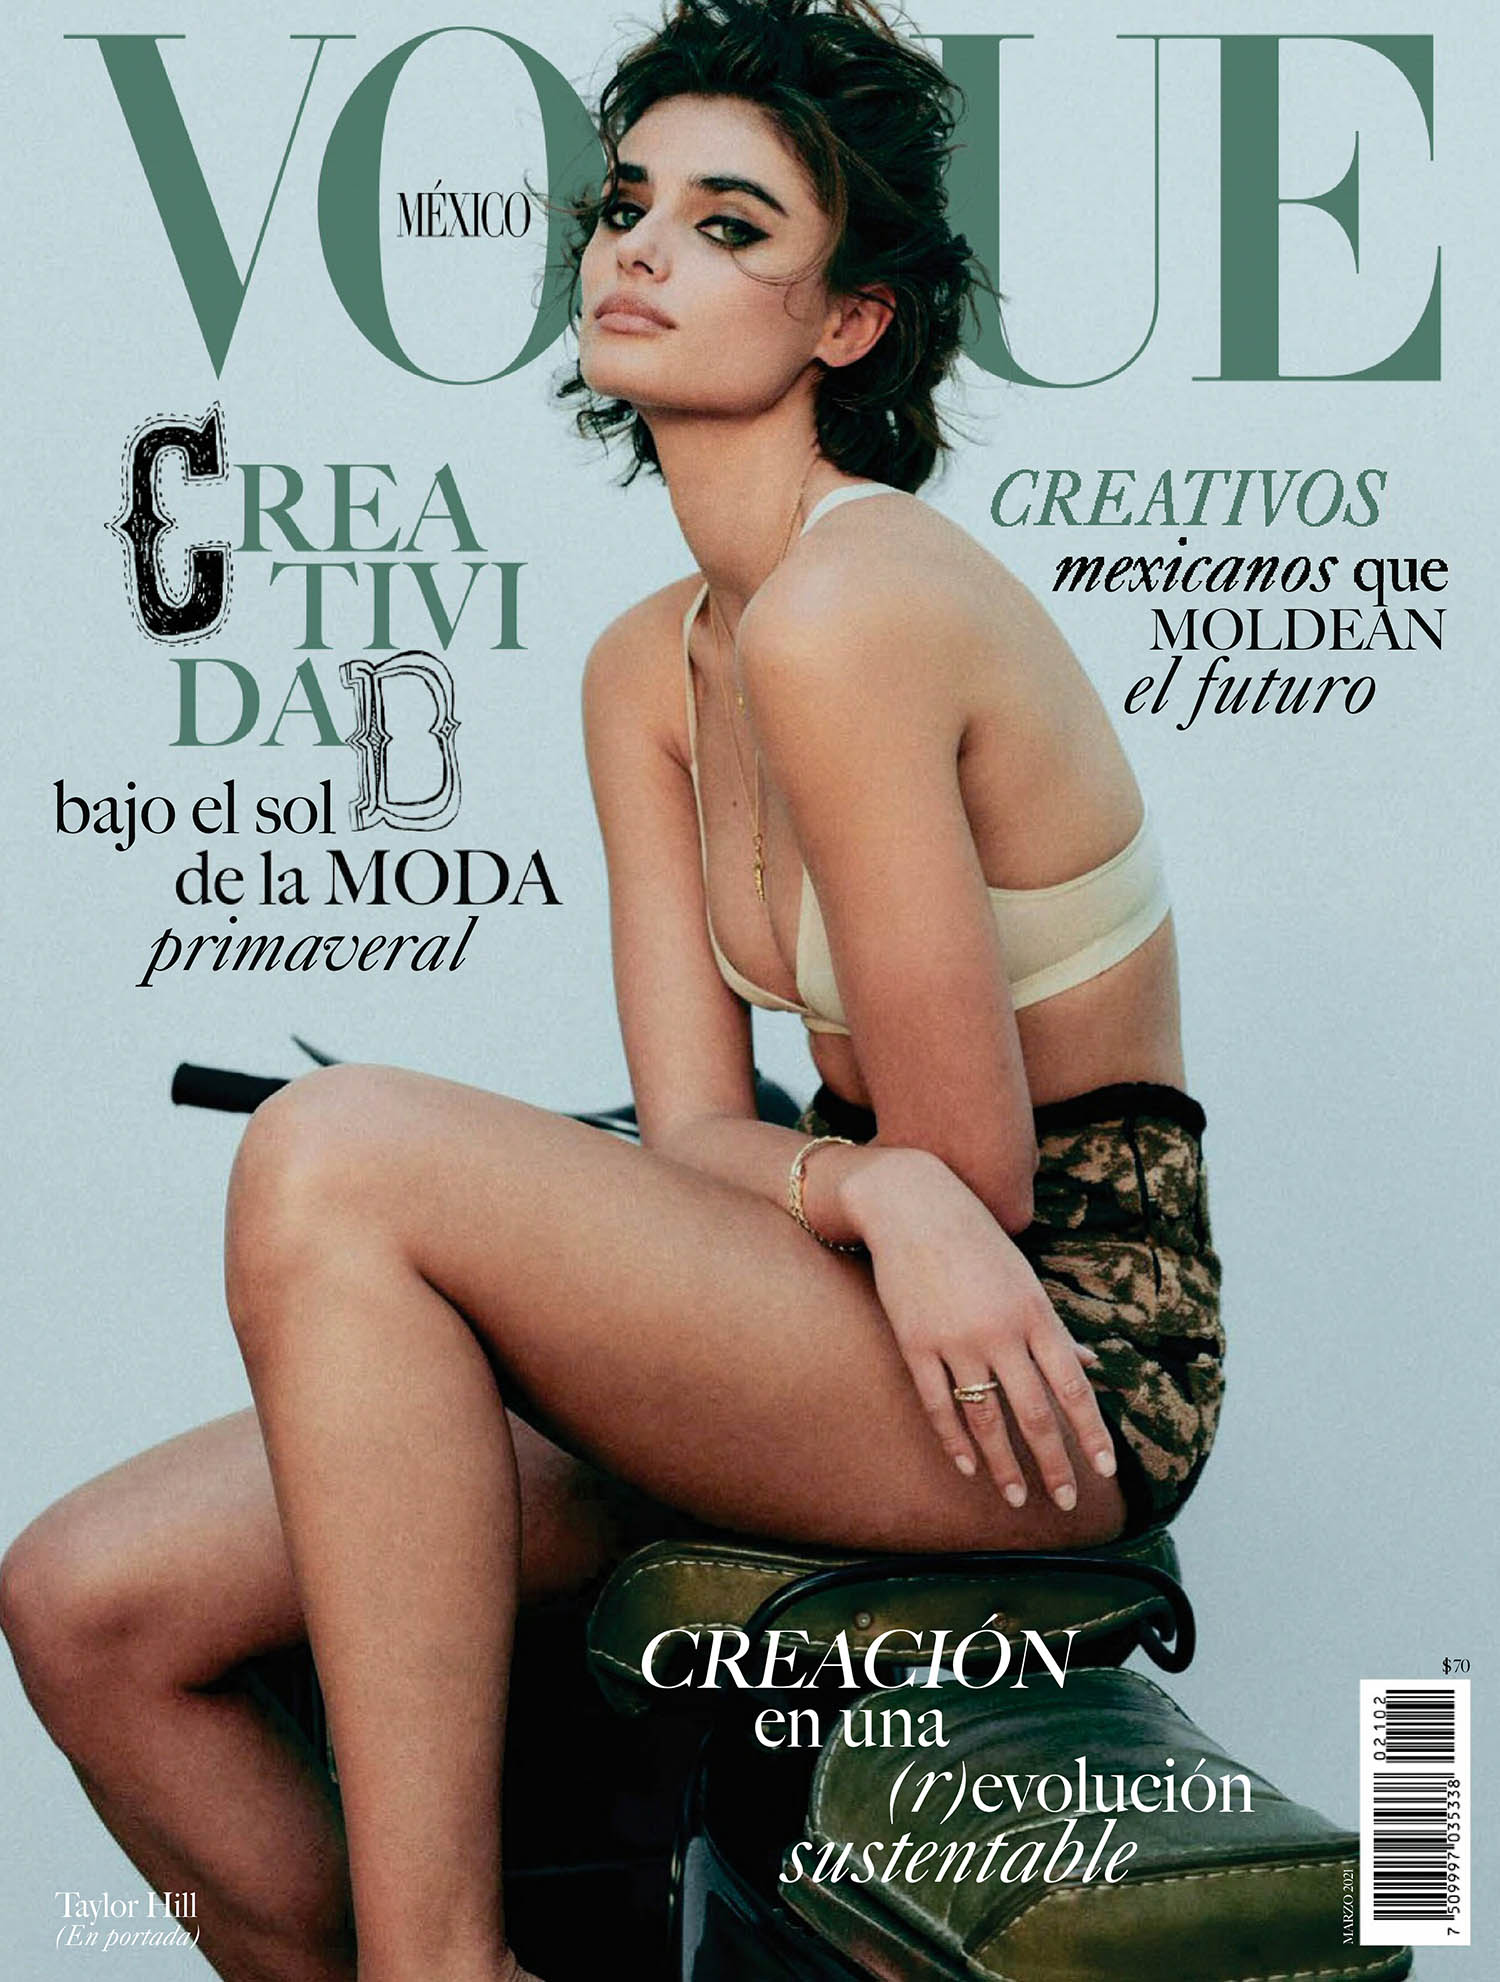 Taylor Hill covers Vogue Mexico March 2021 by Chris Colls